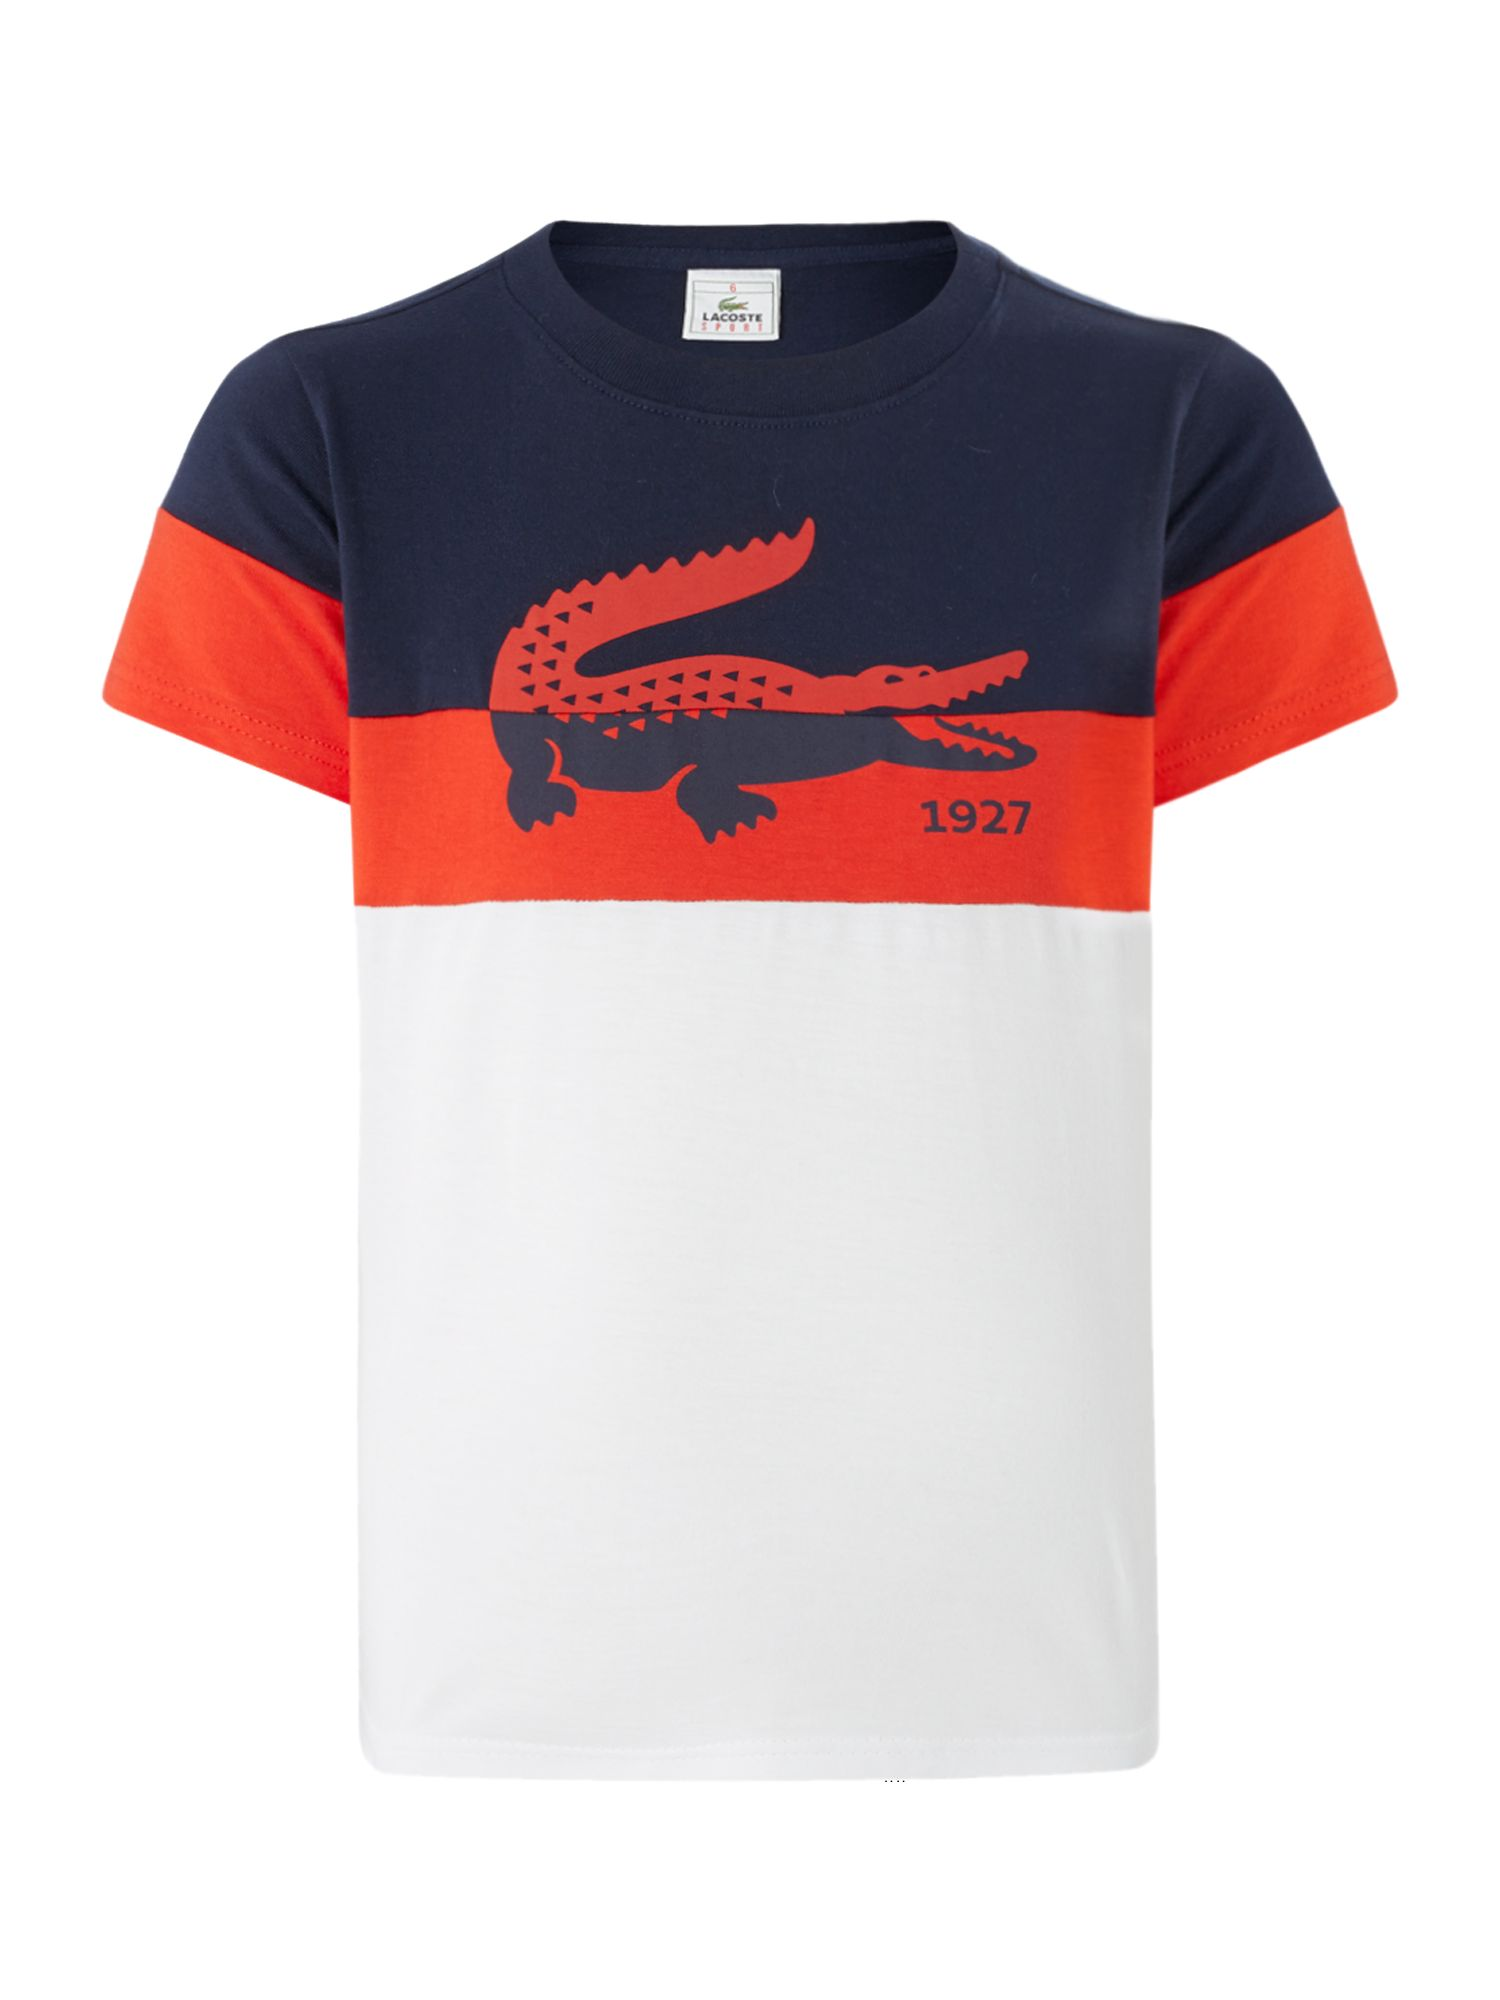 Boys big croc t-shirt